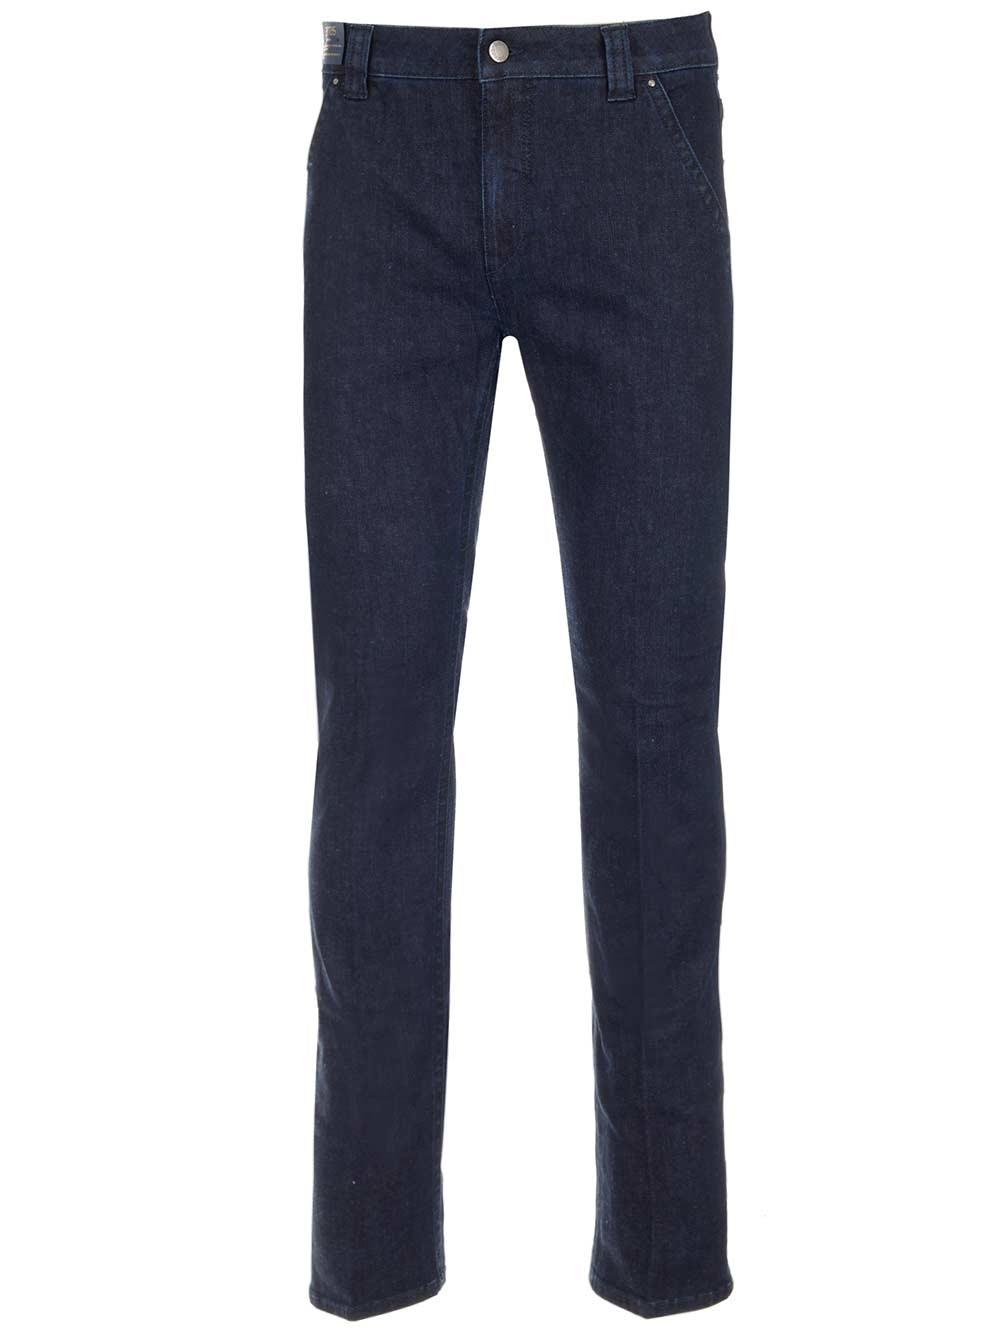 BARMAS Blue Deim Trousers